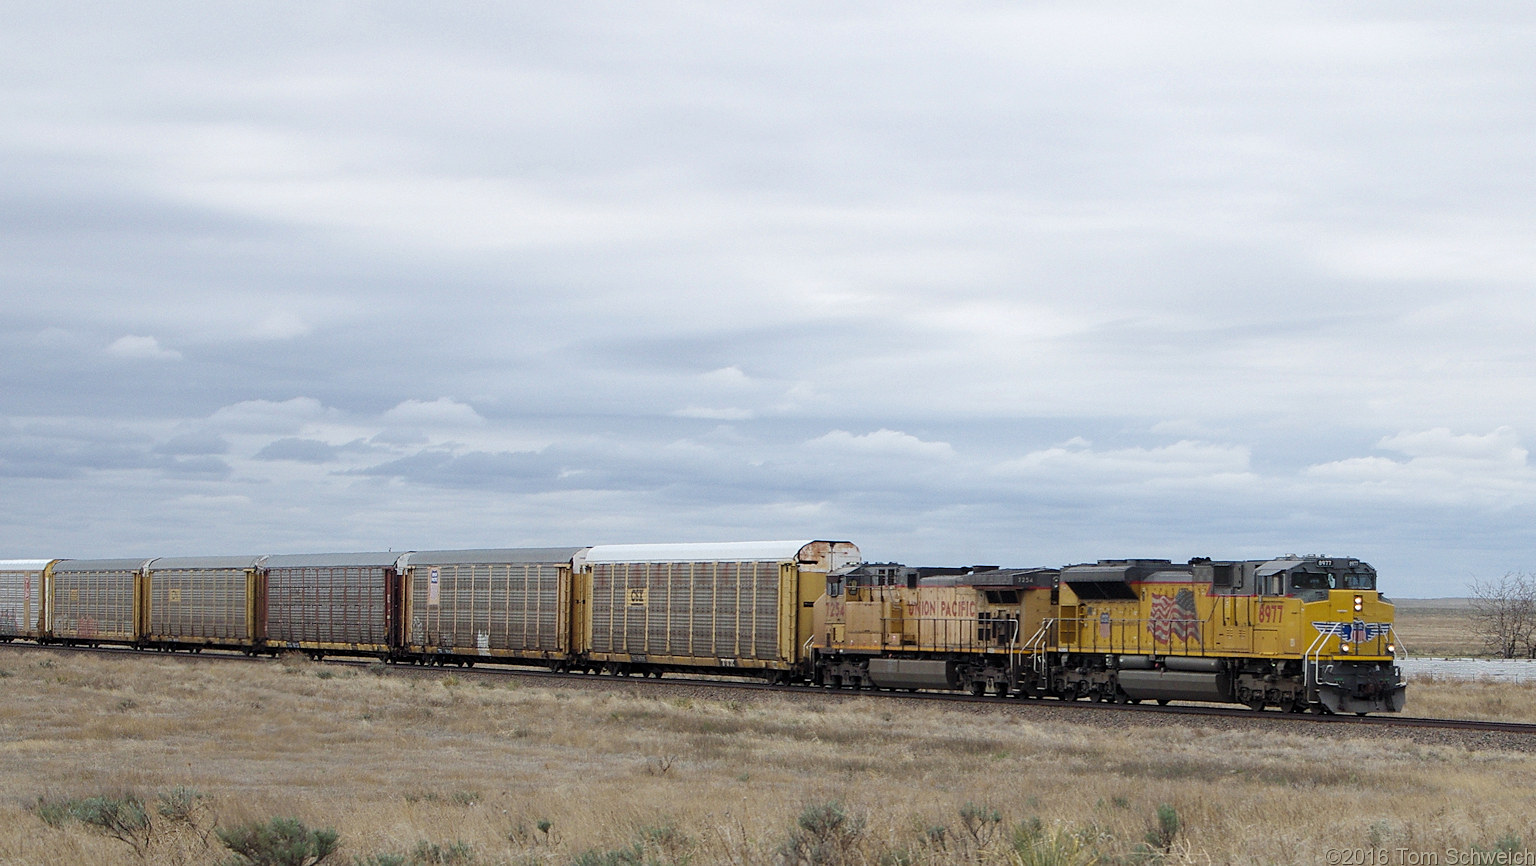 UP 8977 and UP 7254 pulling a string of empty tri-levels eastbound between Kit Carson and Cheyenne Wells, Colorado.